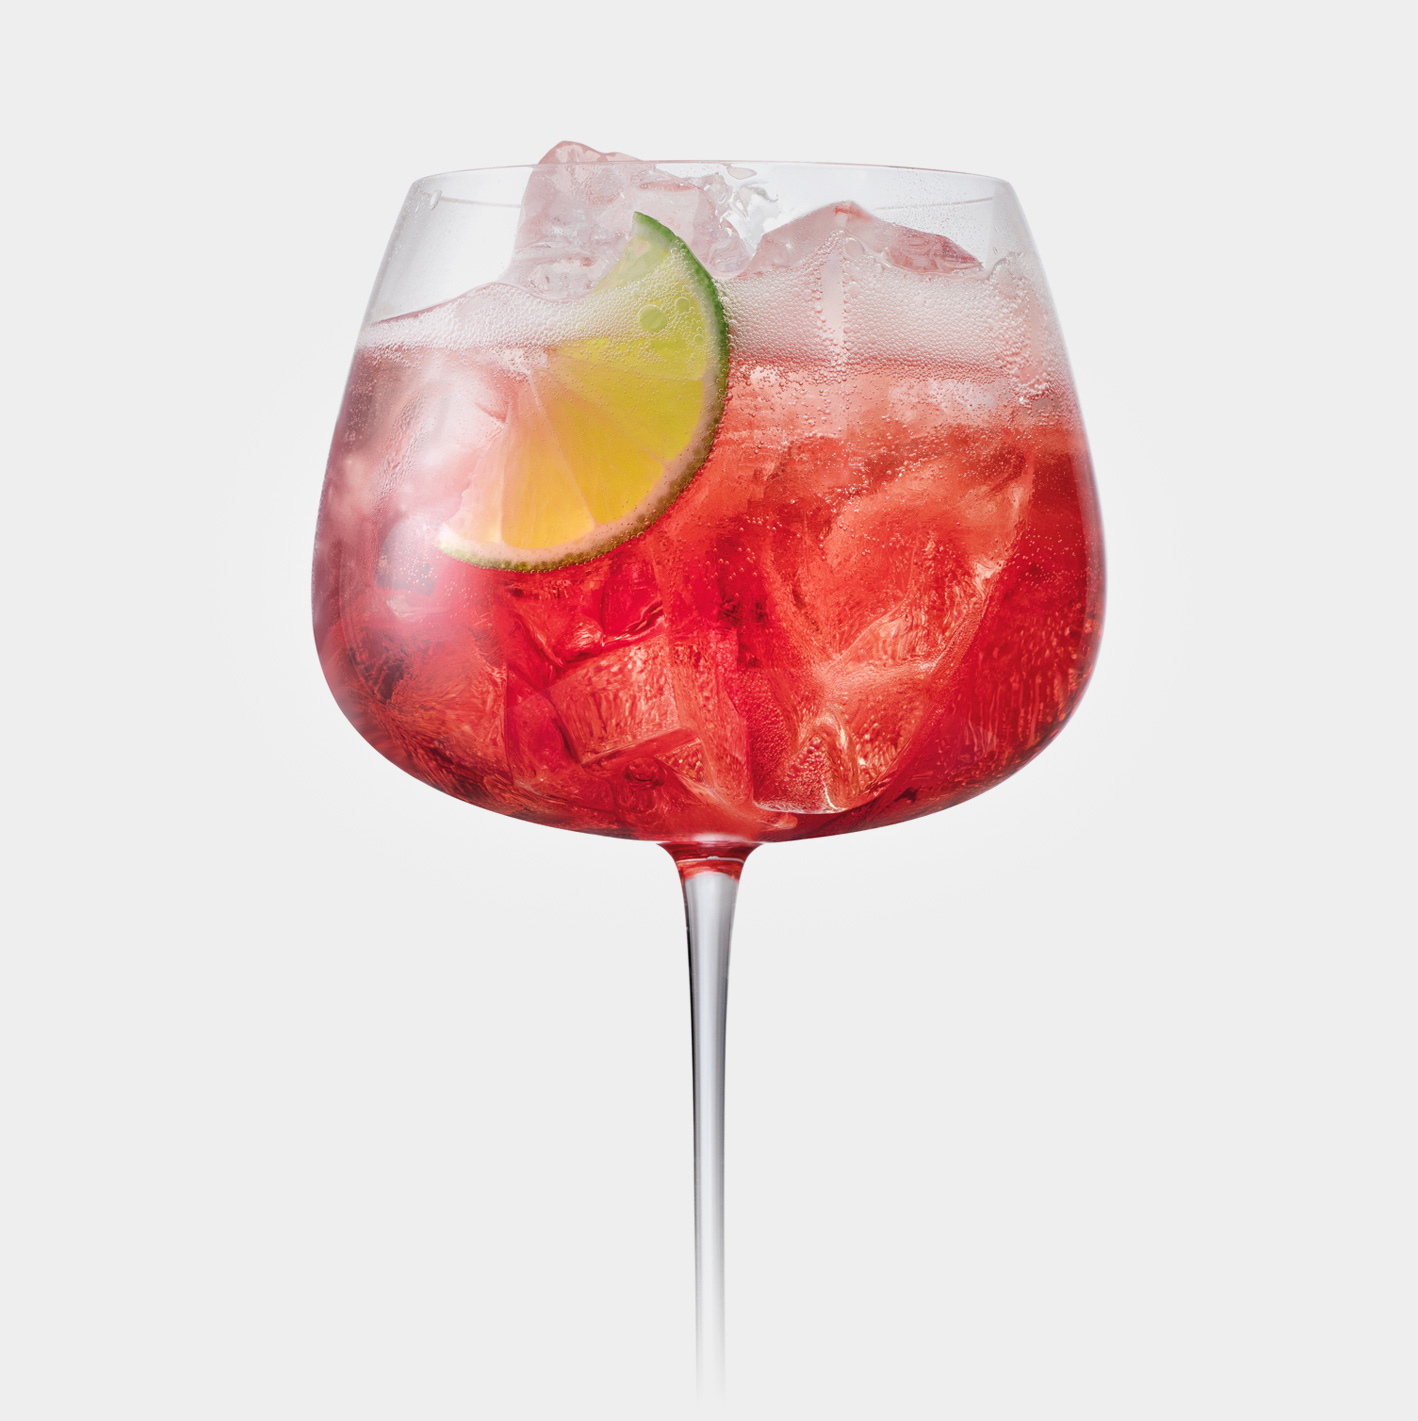 Ready for Bitter - Campari Gin and Tonic